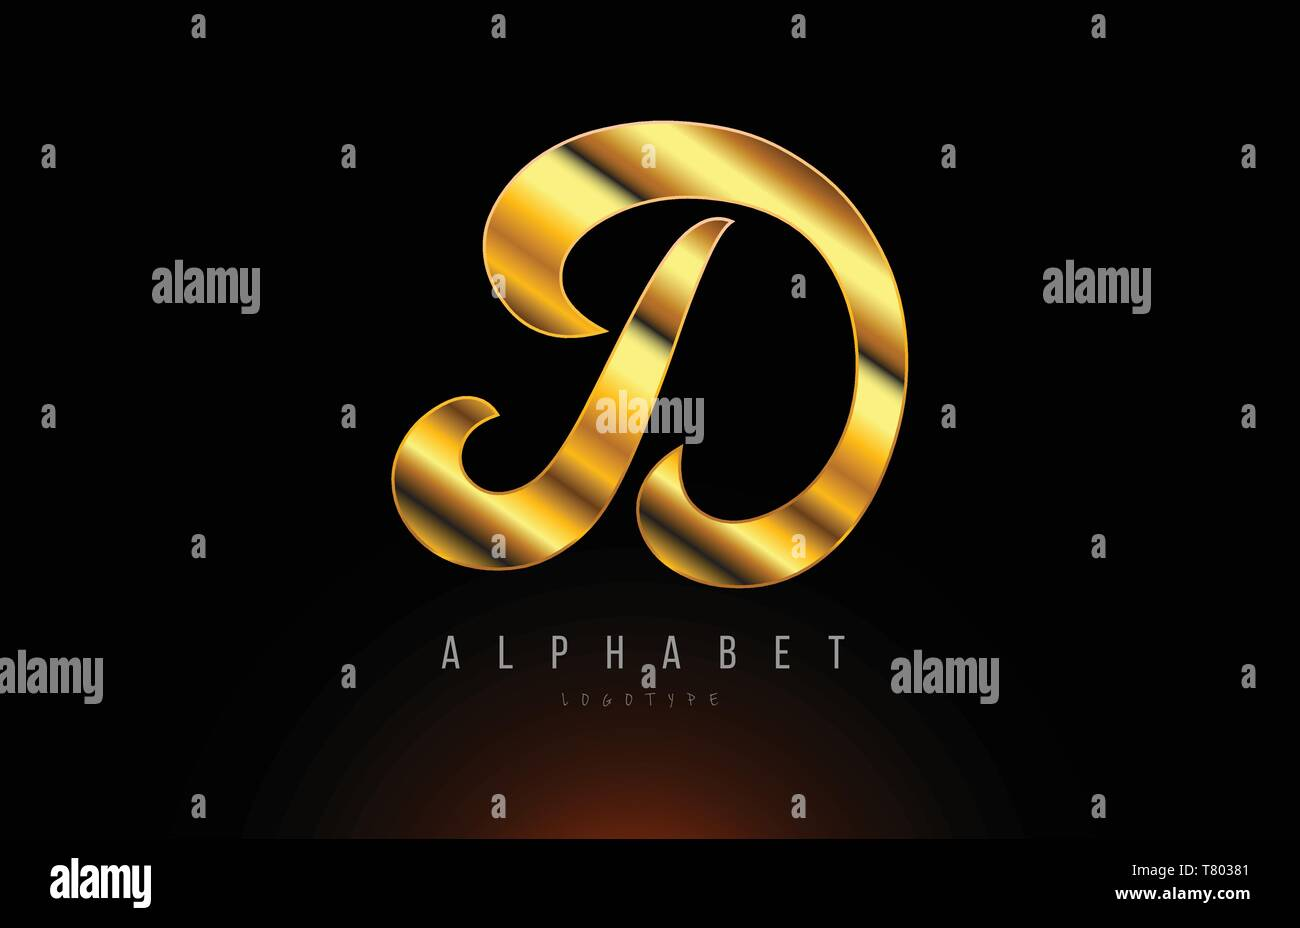 Gold Golden Letter D Logo Design With Metal Look Suitable